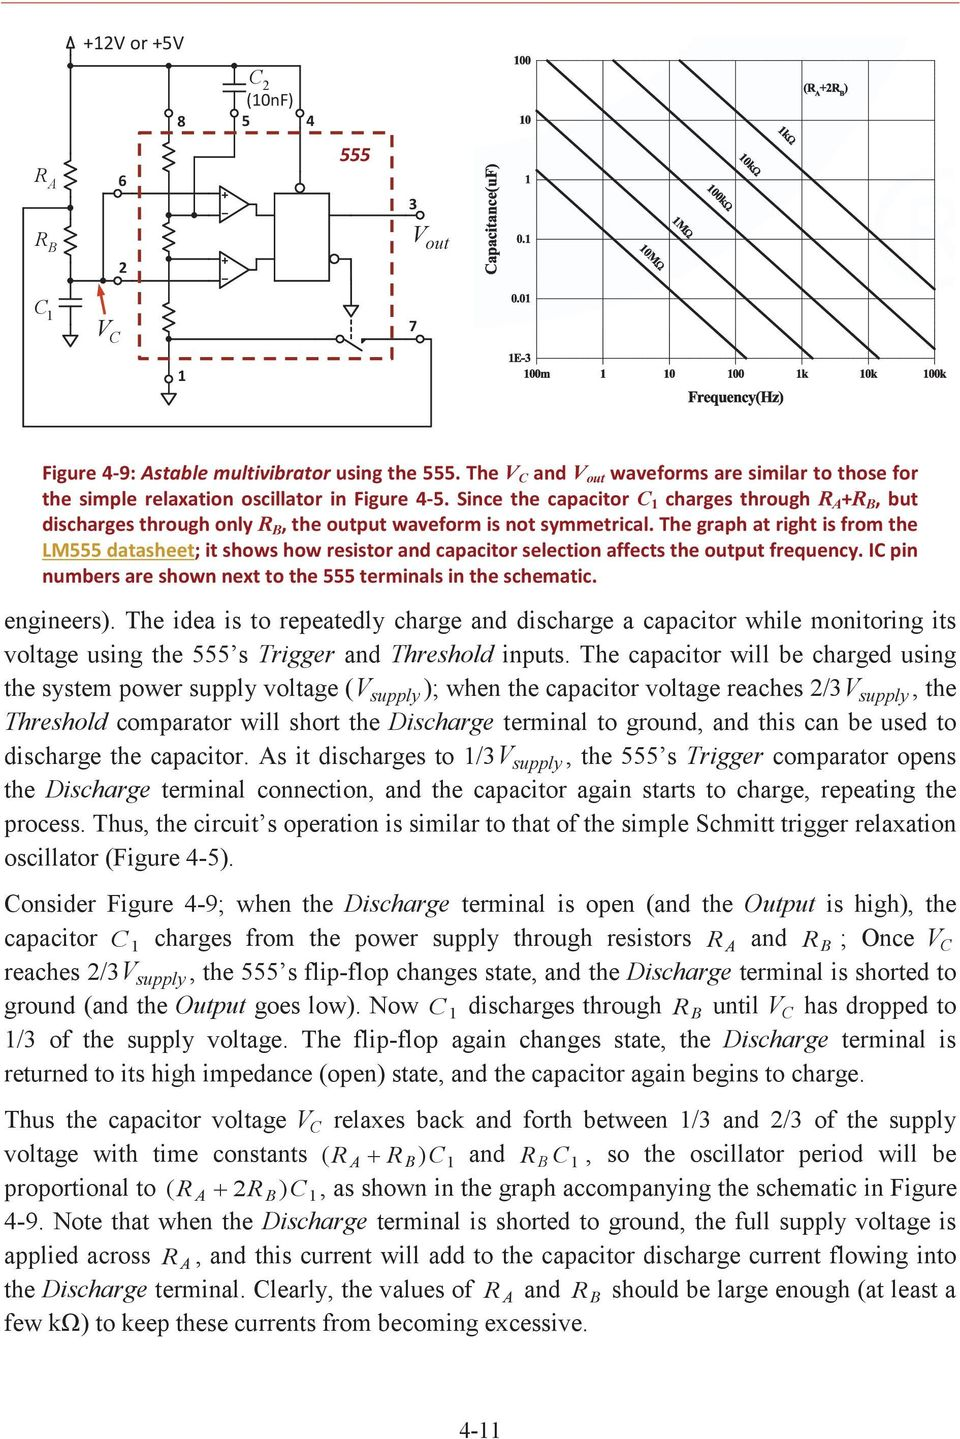 Comparators Positive Feedback And Relaxation Oscillators Pdf Wide Range 555 Vco Circuit Schematic Since The Capacitor C 1 Charges Through A B But Discharges Only